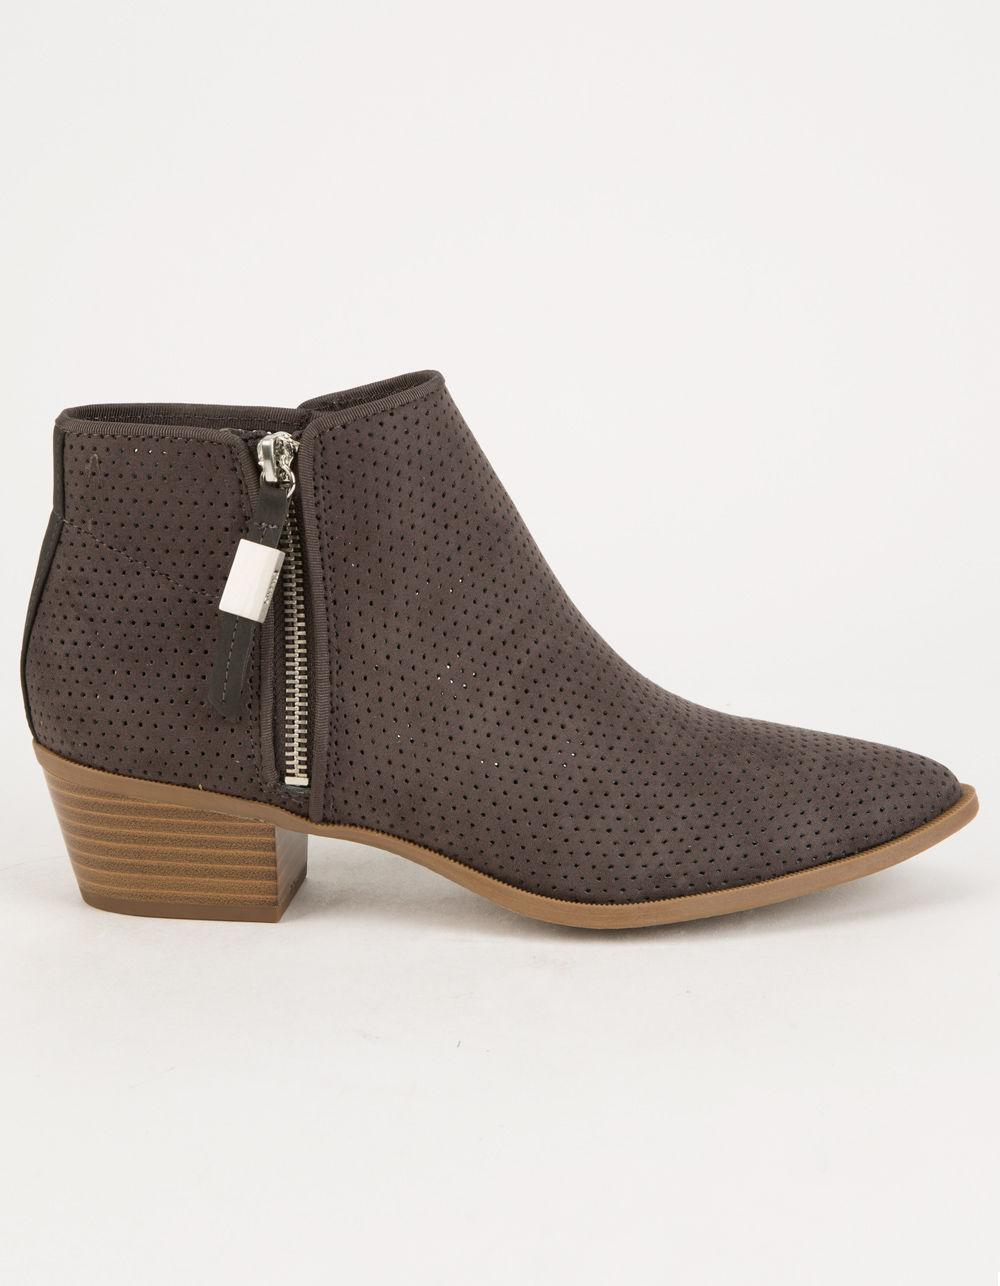 35708913f Lyst - Circus By Sam Edelman Hunter Womens Ankle Boots in Gray